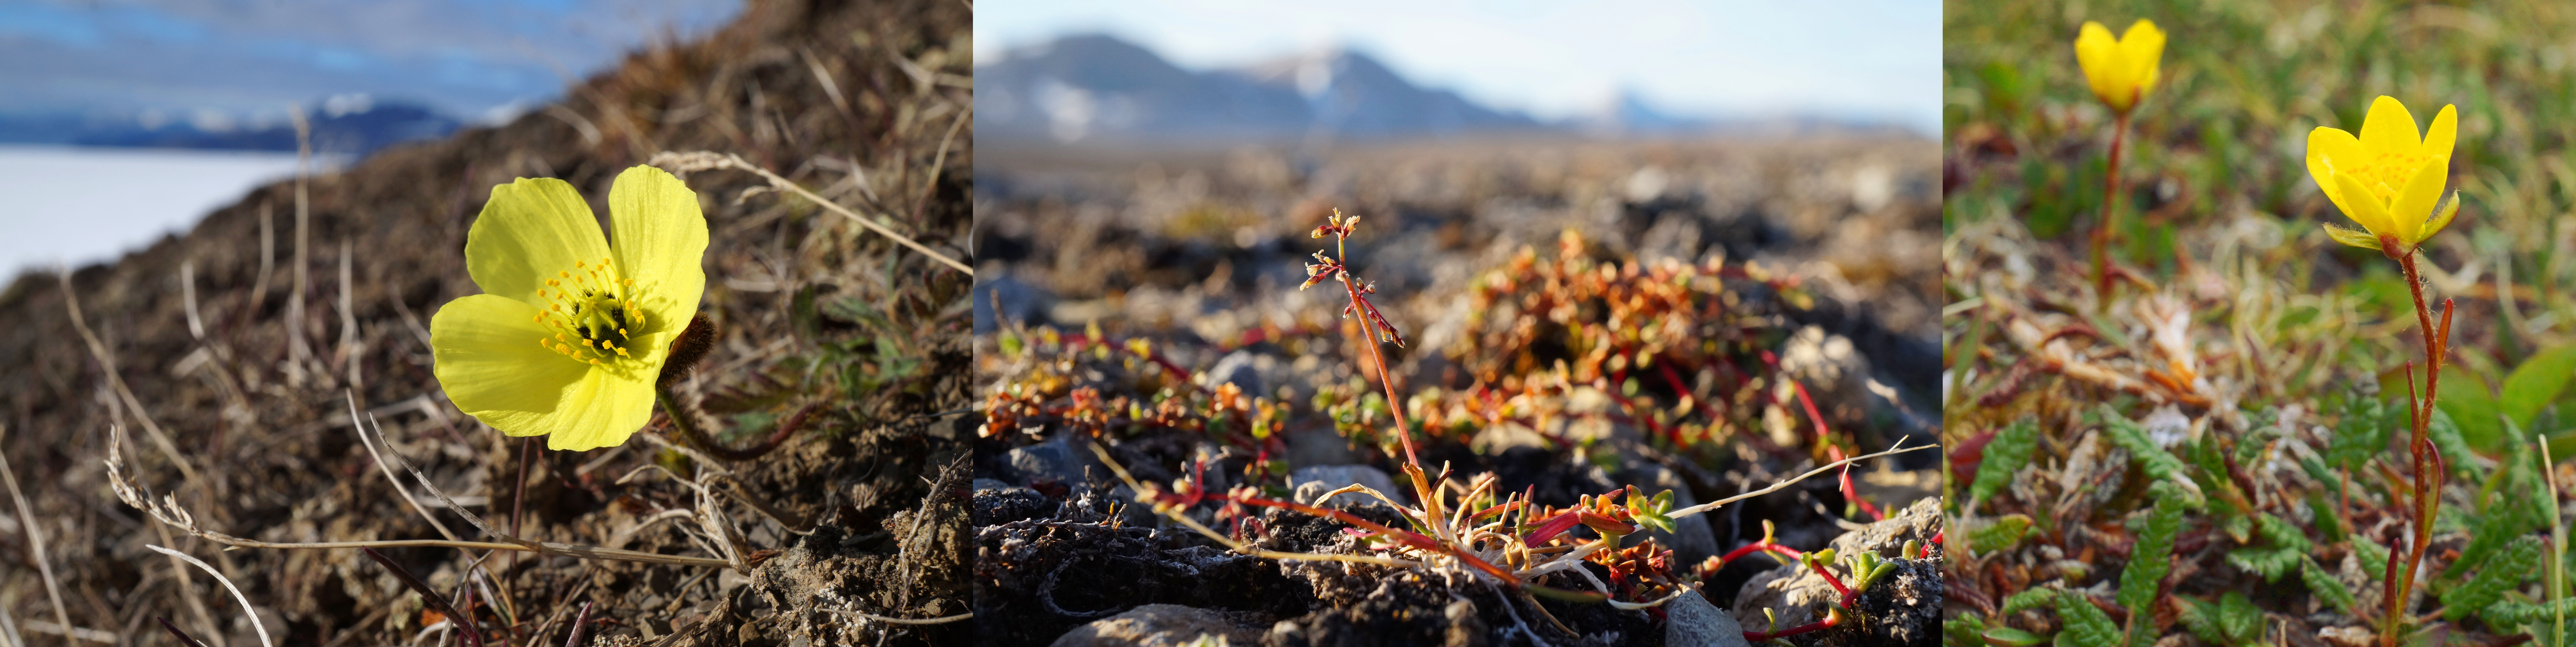 Examples of plants that are common on Svalbard, but rare on mainland Norway. This is gold for botanists visiting Svalbard for te first time! From the left: Papaver dahlianum, Phippsia concinna, Saxifraga hirculus.